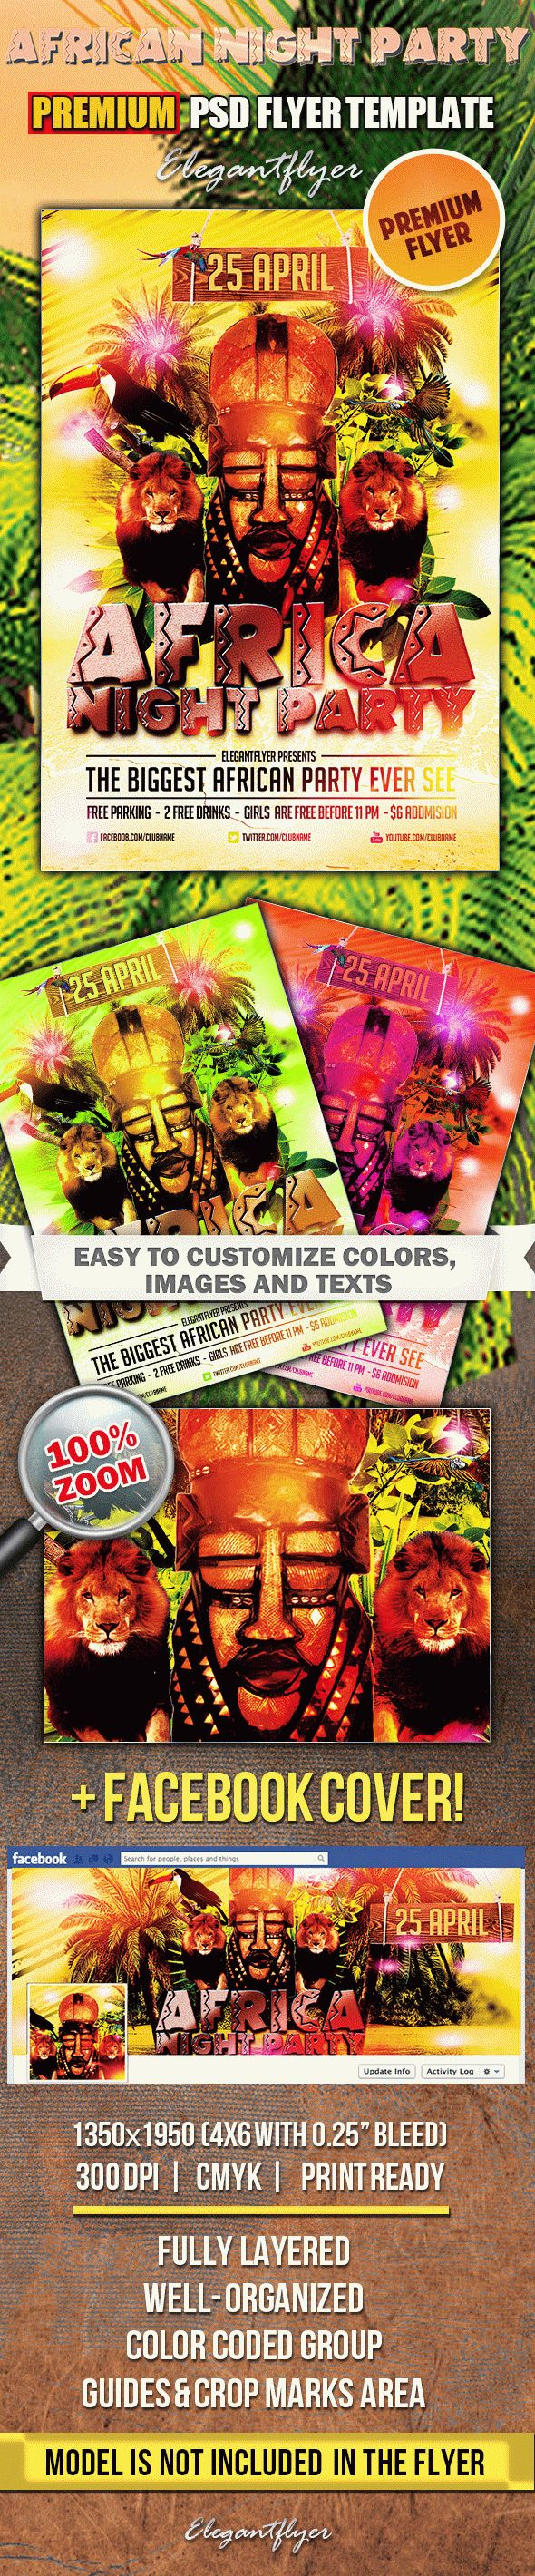 Africa Night Party – PSD Flyer Templates + Facebook Cover